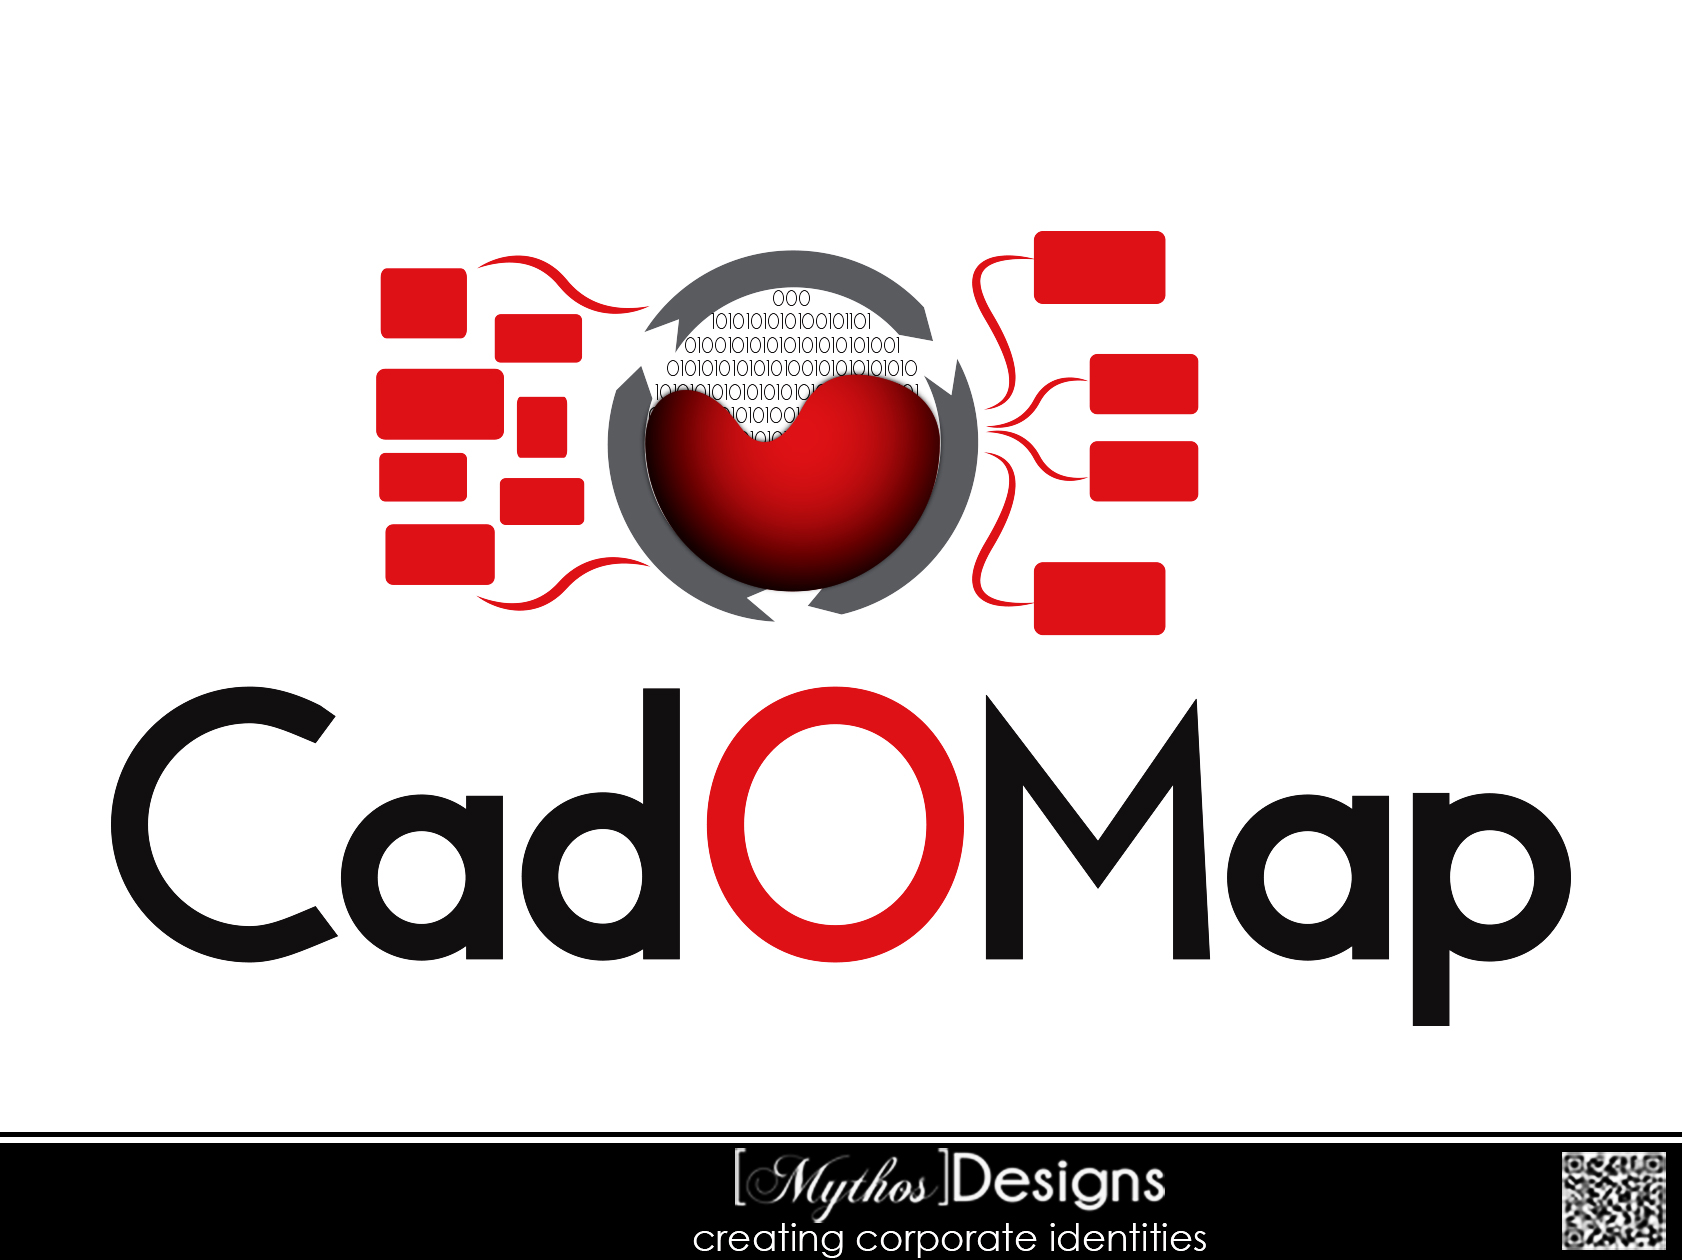 Logo Design by Mythos Designs - Entry No. 79 in the Logo Design Contest Captivating Logo Design for CadOMap software product.